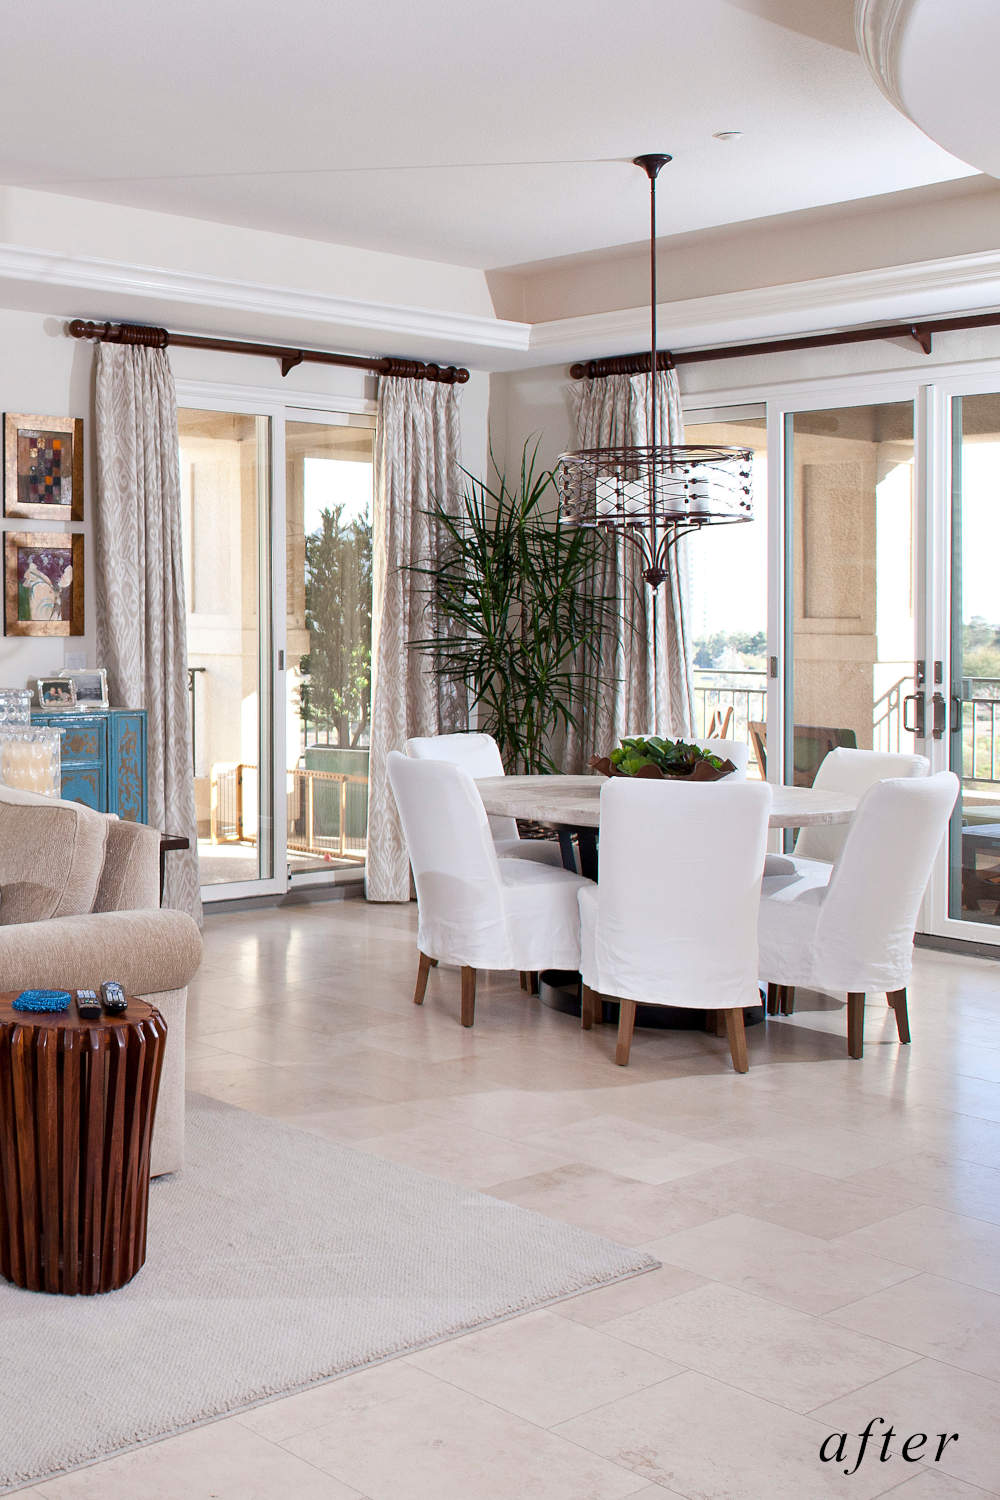 After remodel image: bright home dining room with stone top dining table, white dining chairs.